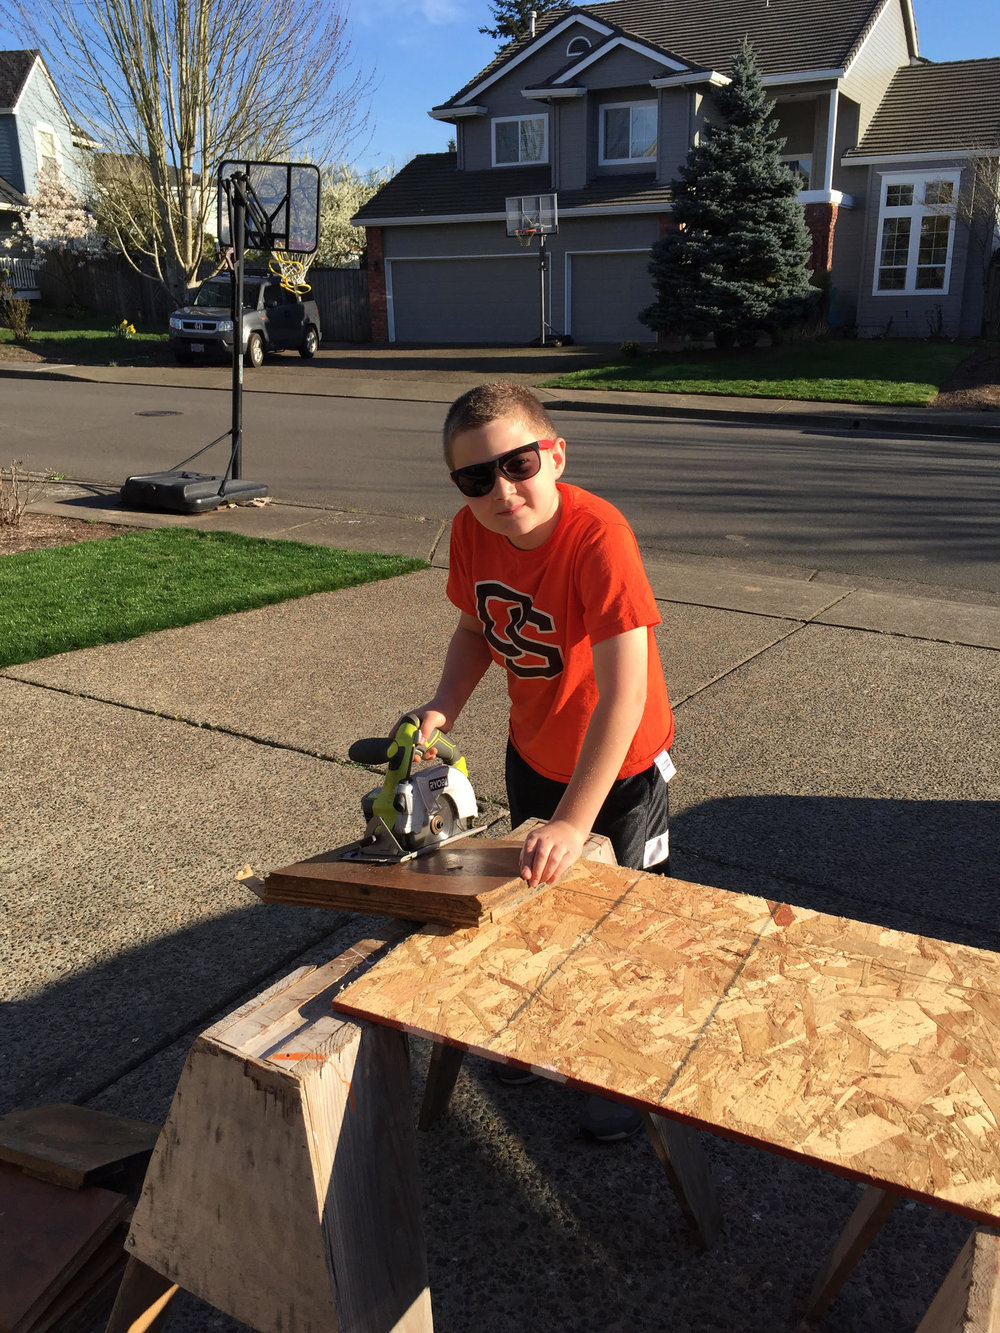 Here is Carson Puppo cutting wood for a furniture project.